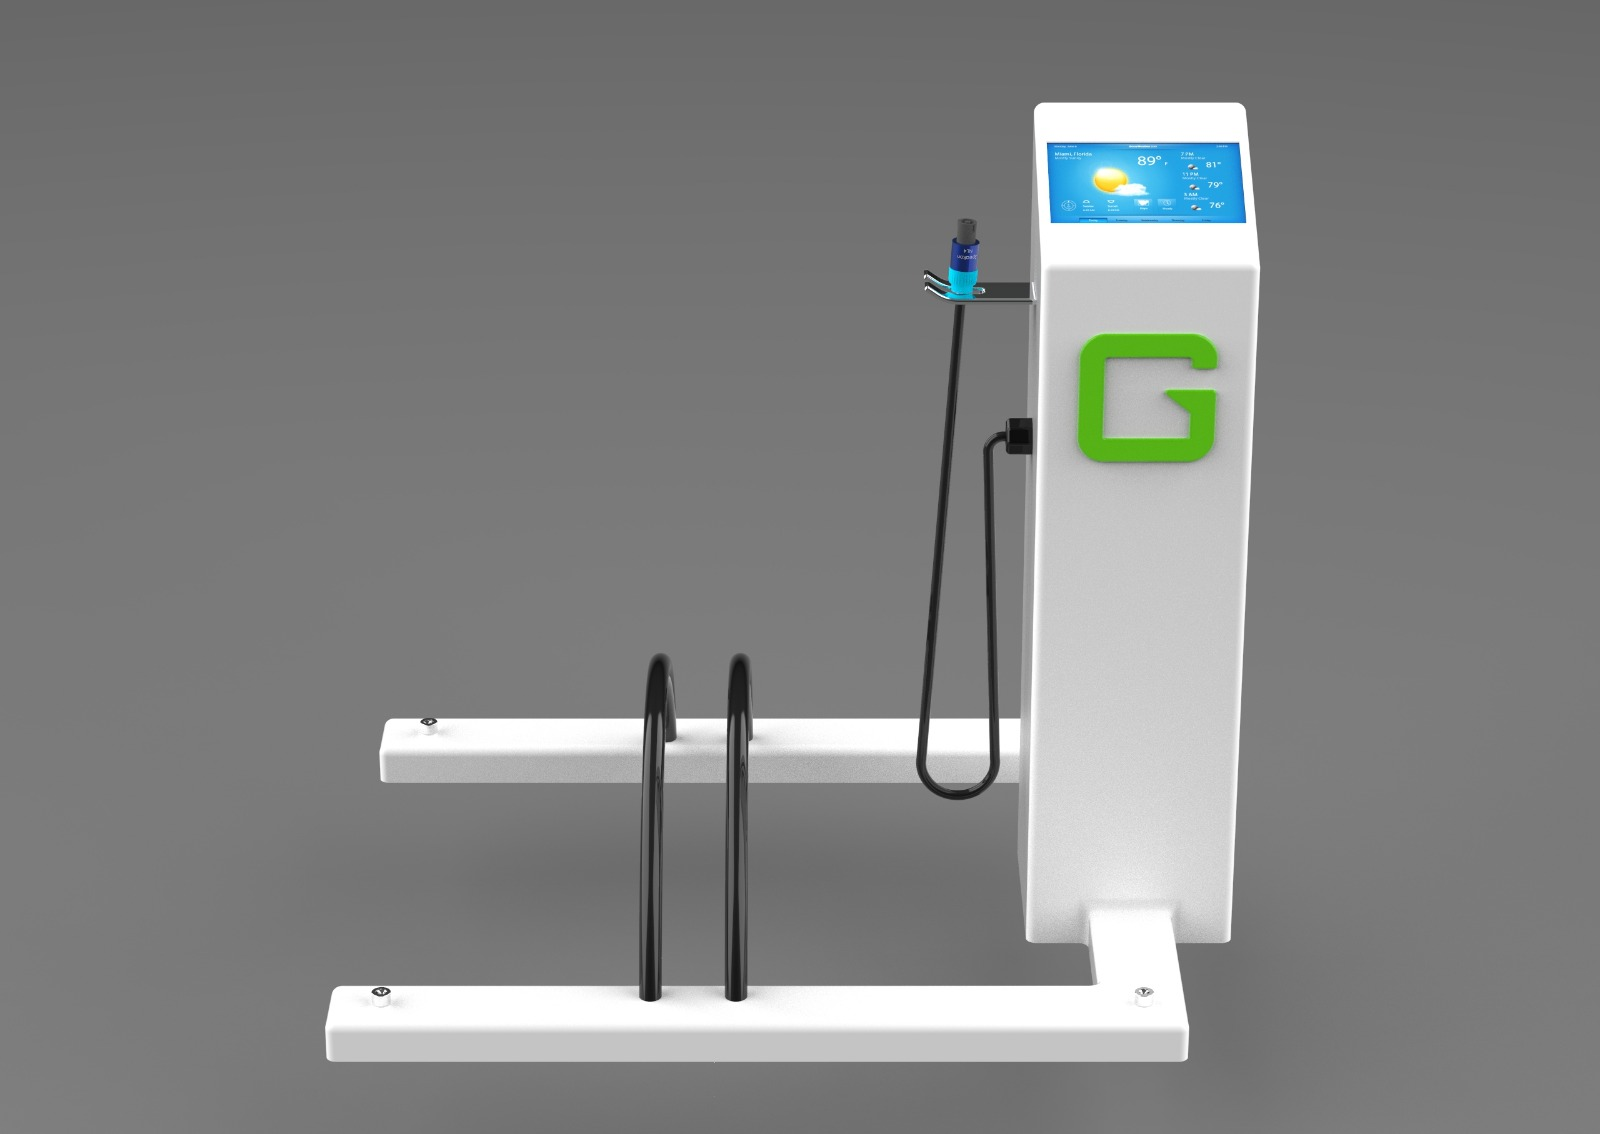 https://www.mvt-solutions.com/project/gstation/